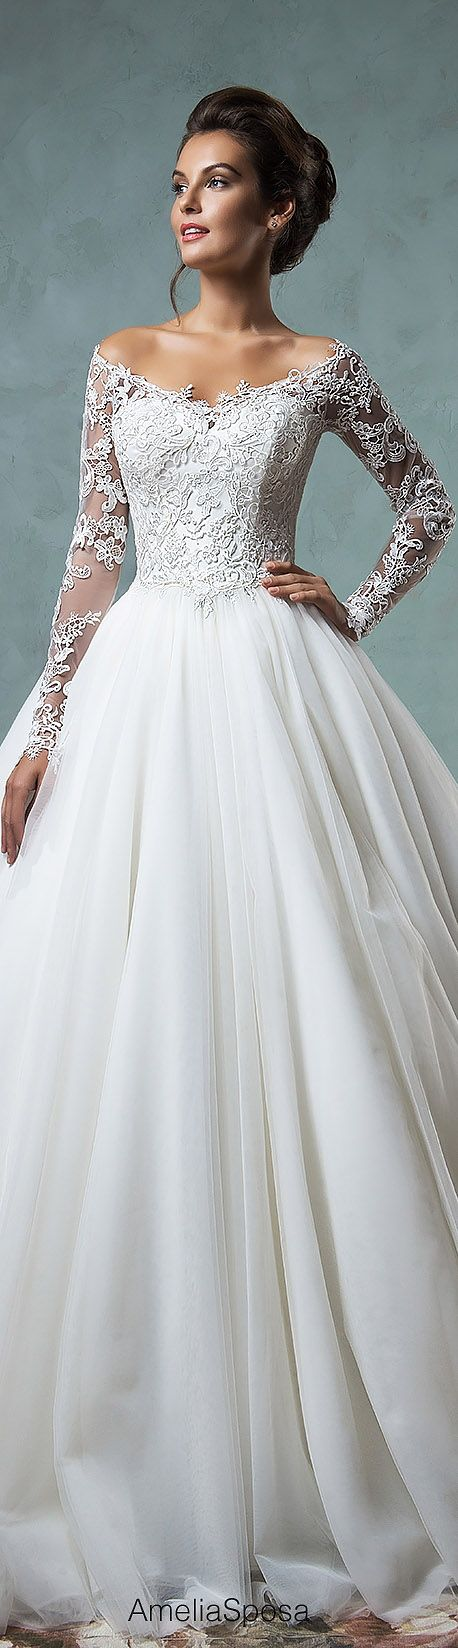 36 lace wedding dresses that you will absolutely love for Fairytale inspired wedding dresses